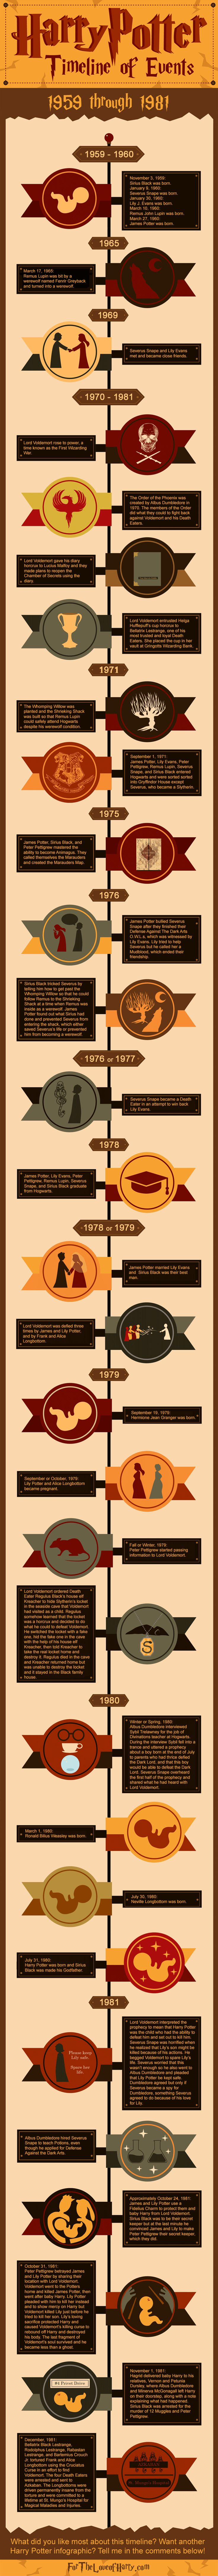 Harry Potter Infographic of events that happened in the wizarding world from 1959 to 1981.